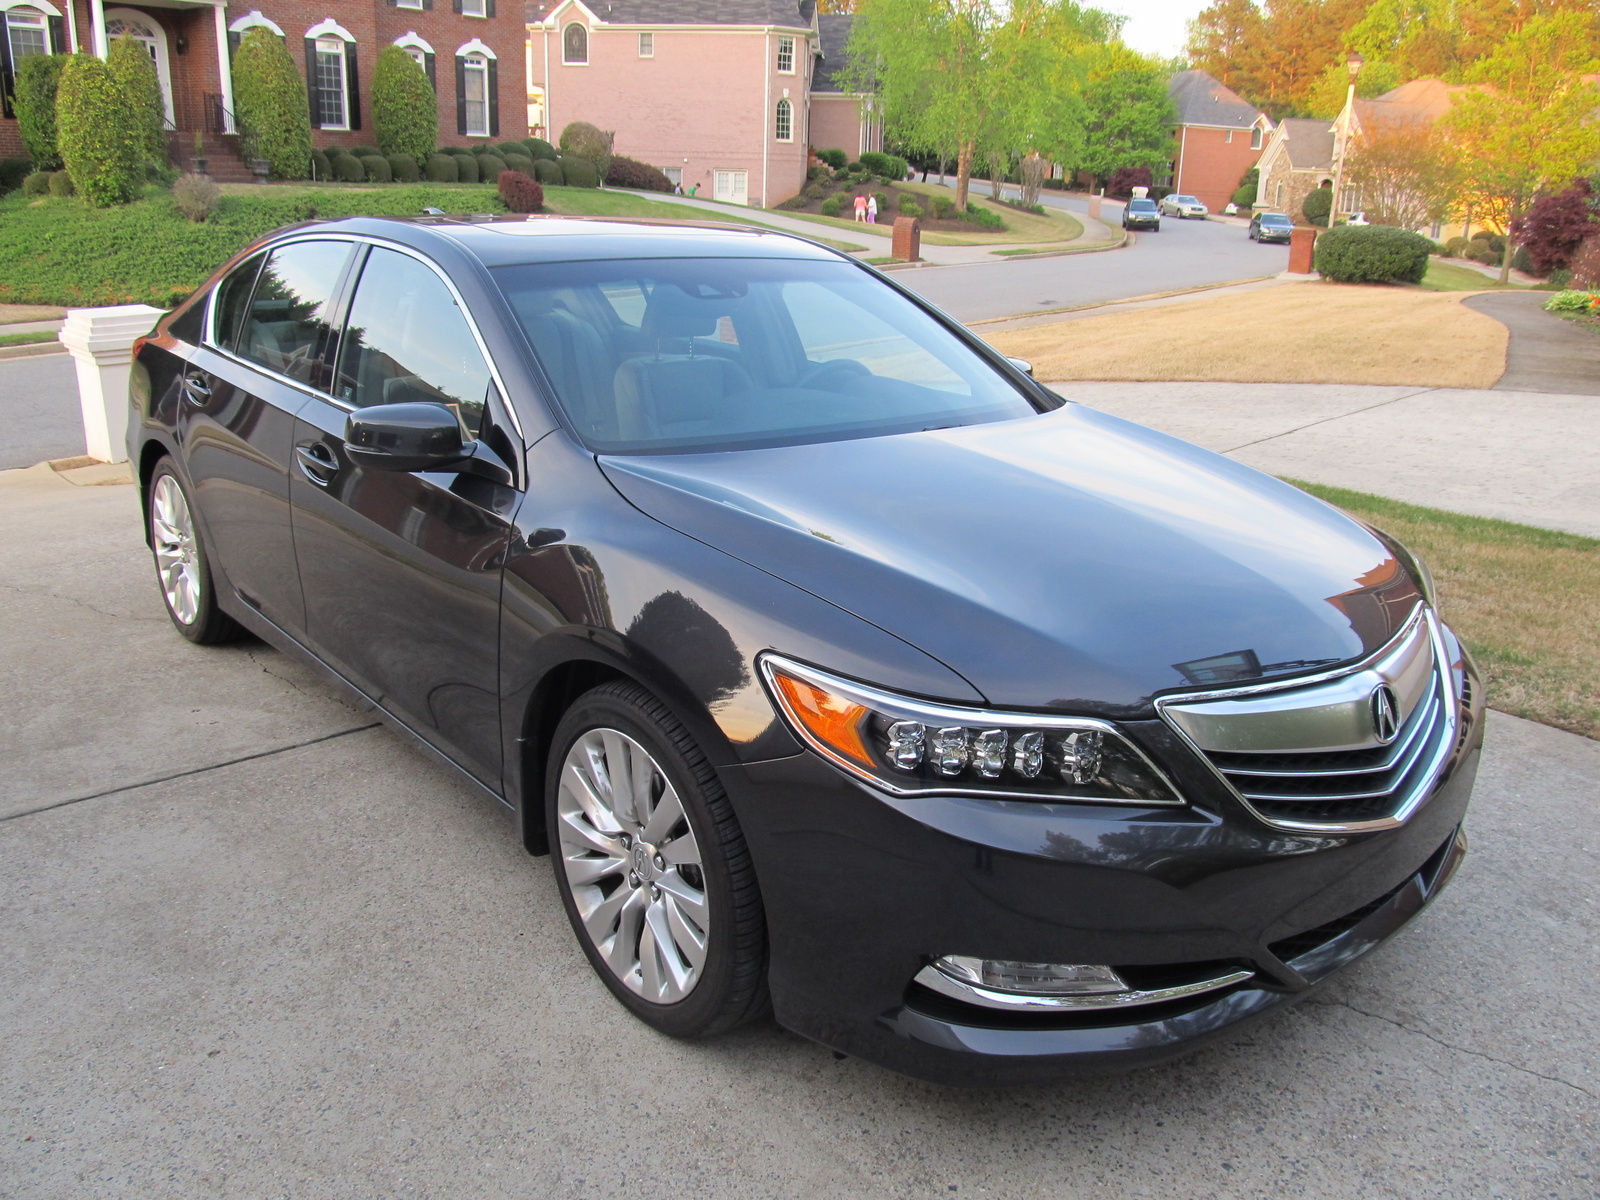 Picture of 2014 Acura RLX Base w/Technology Package